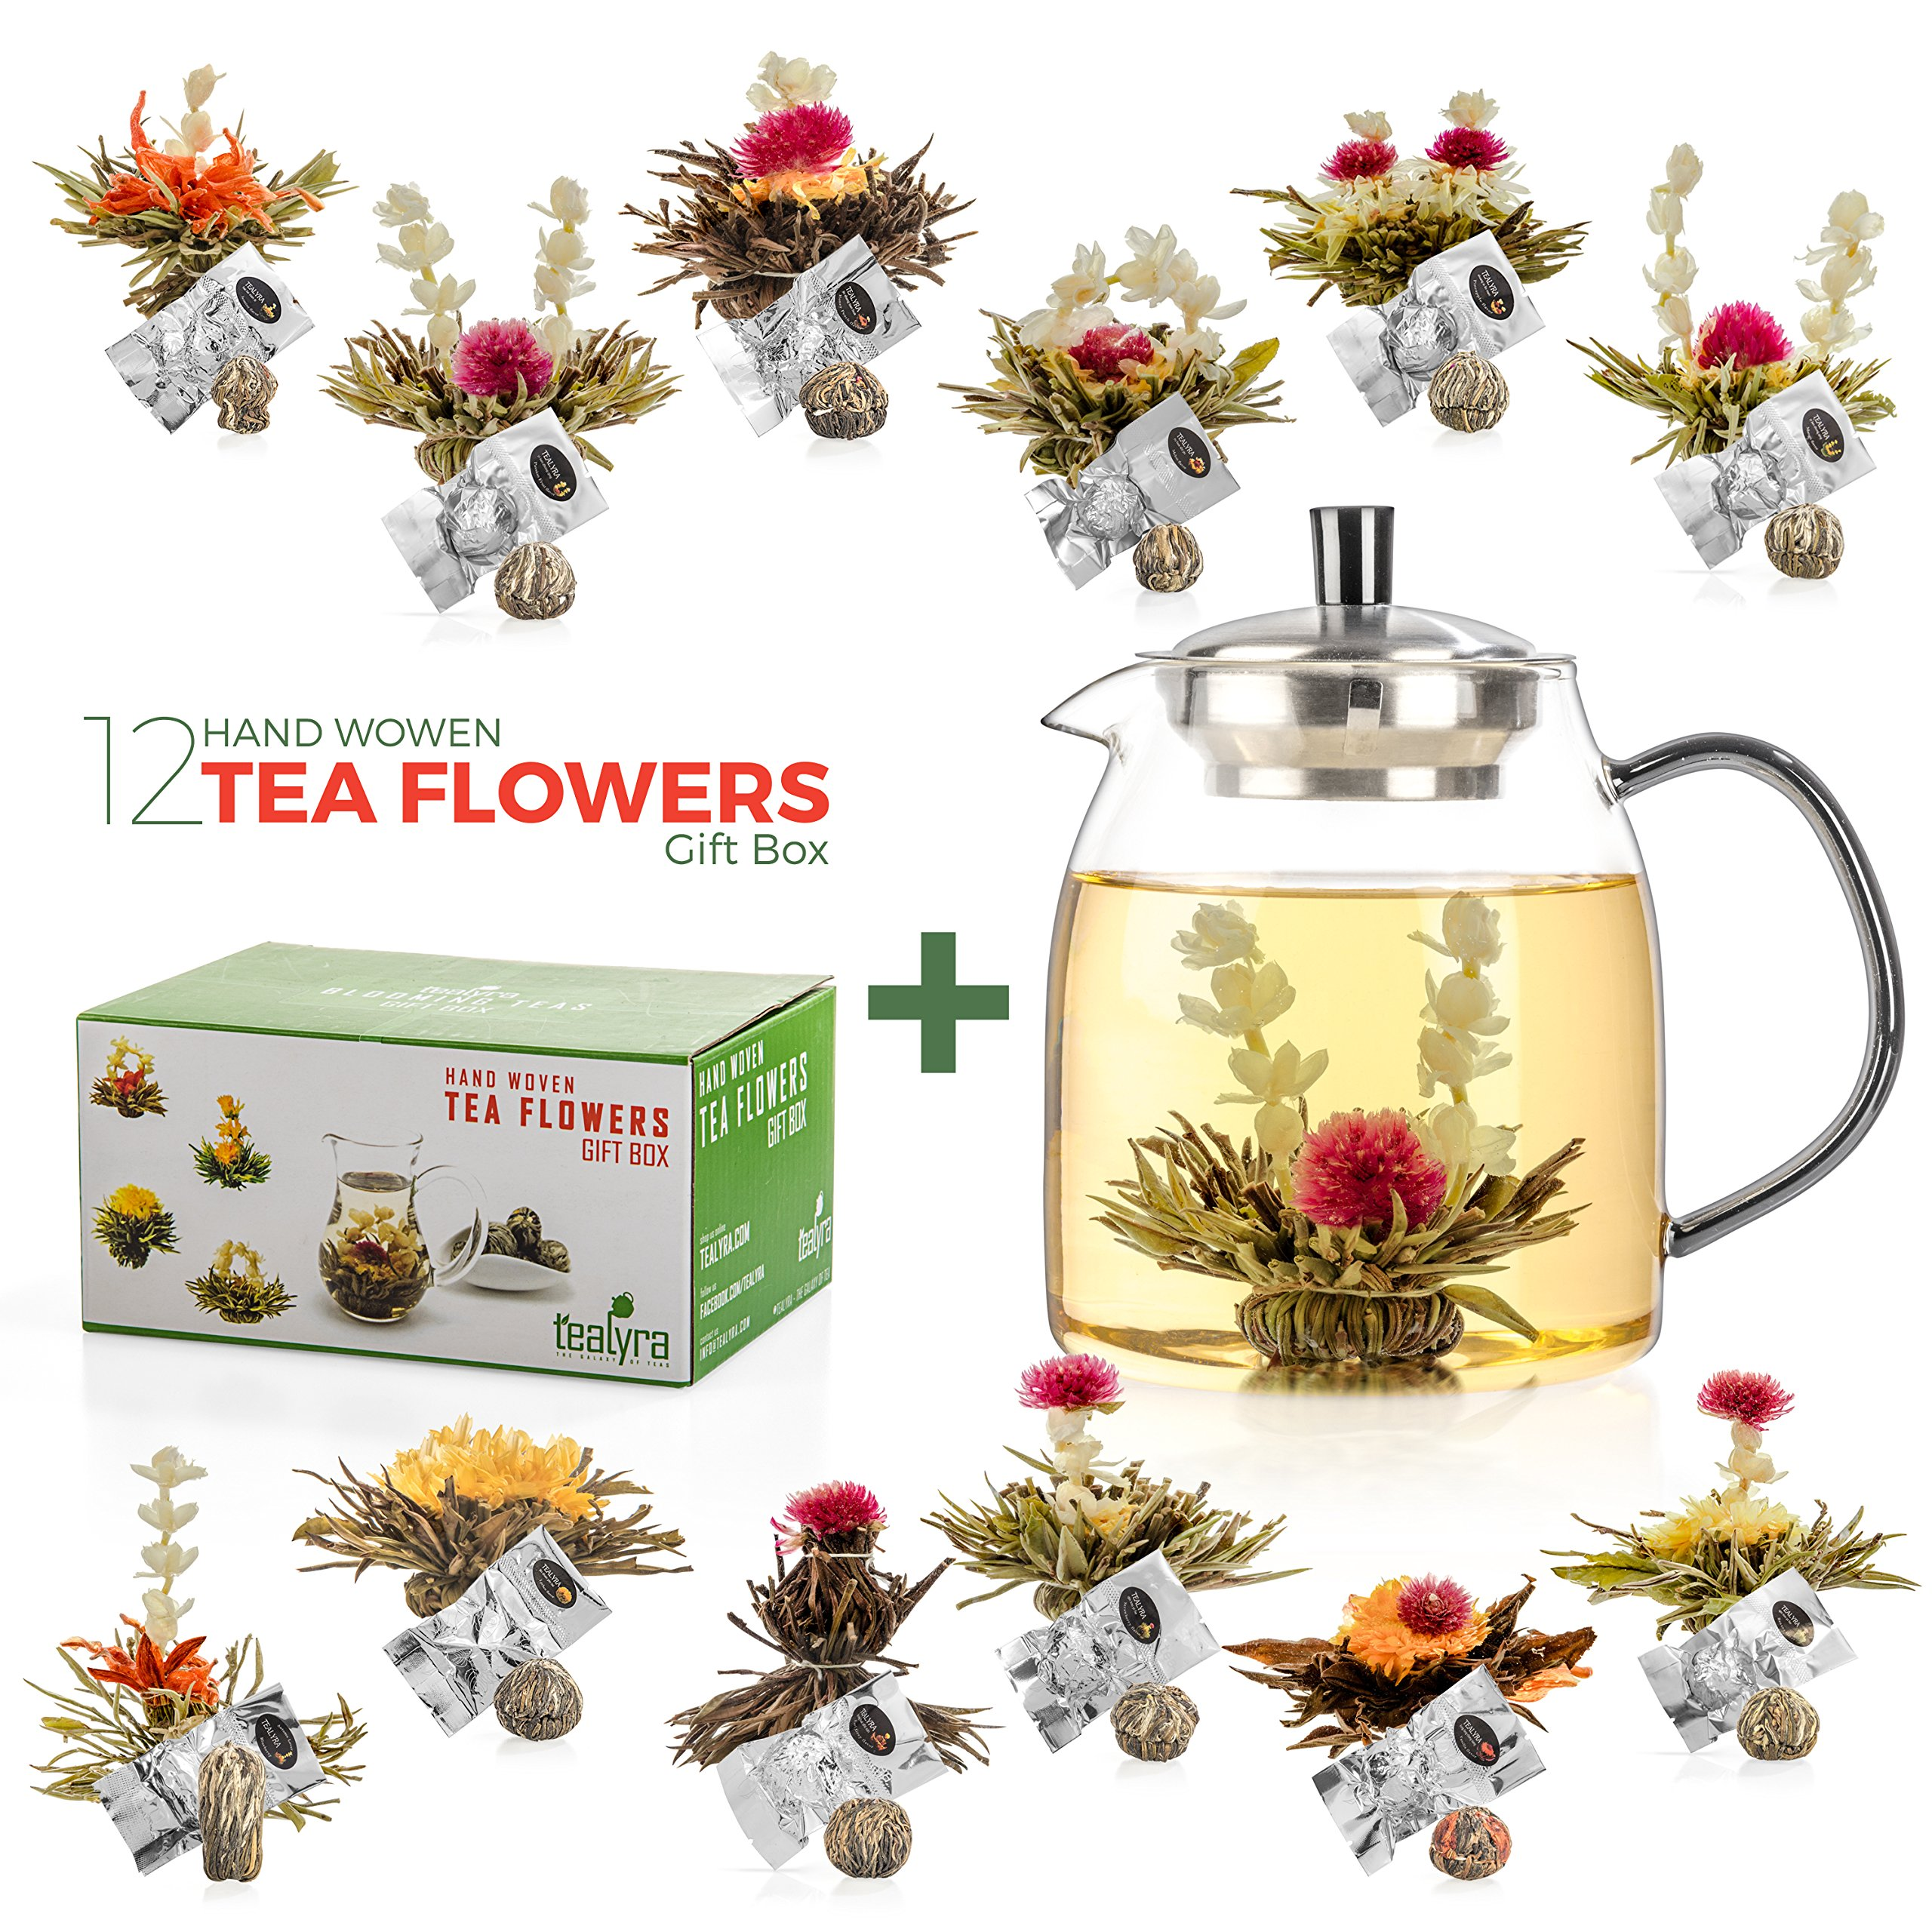 CDM product Tealyra - 12 pcs Blooming Tea and 800ml Glass Teapot Set - 12 Variety Flavors of Finest Flowering Teas - All Tea Balls Individually Sealed - Great Gift Bloom Teas Box big image